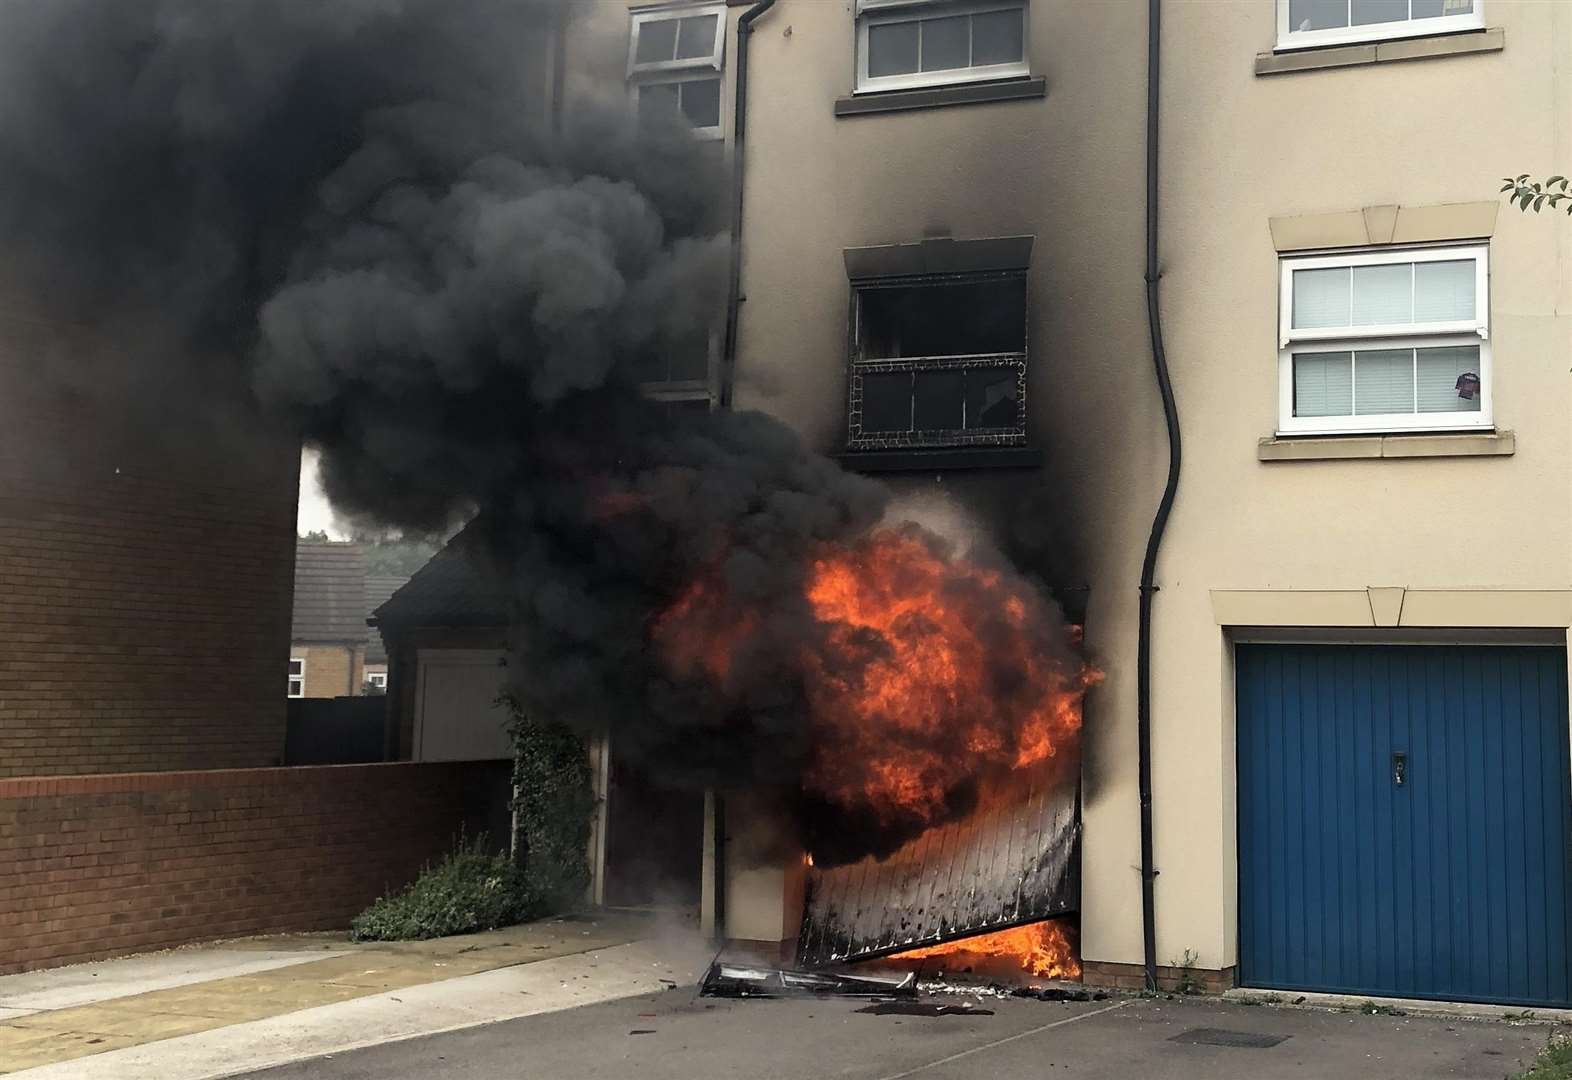 Garage flames spread to house